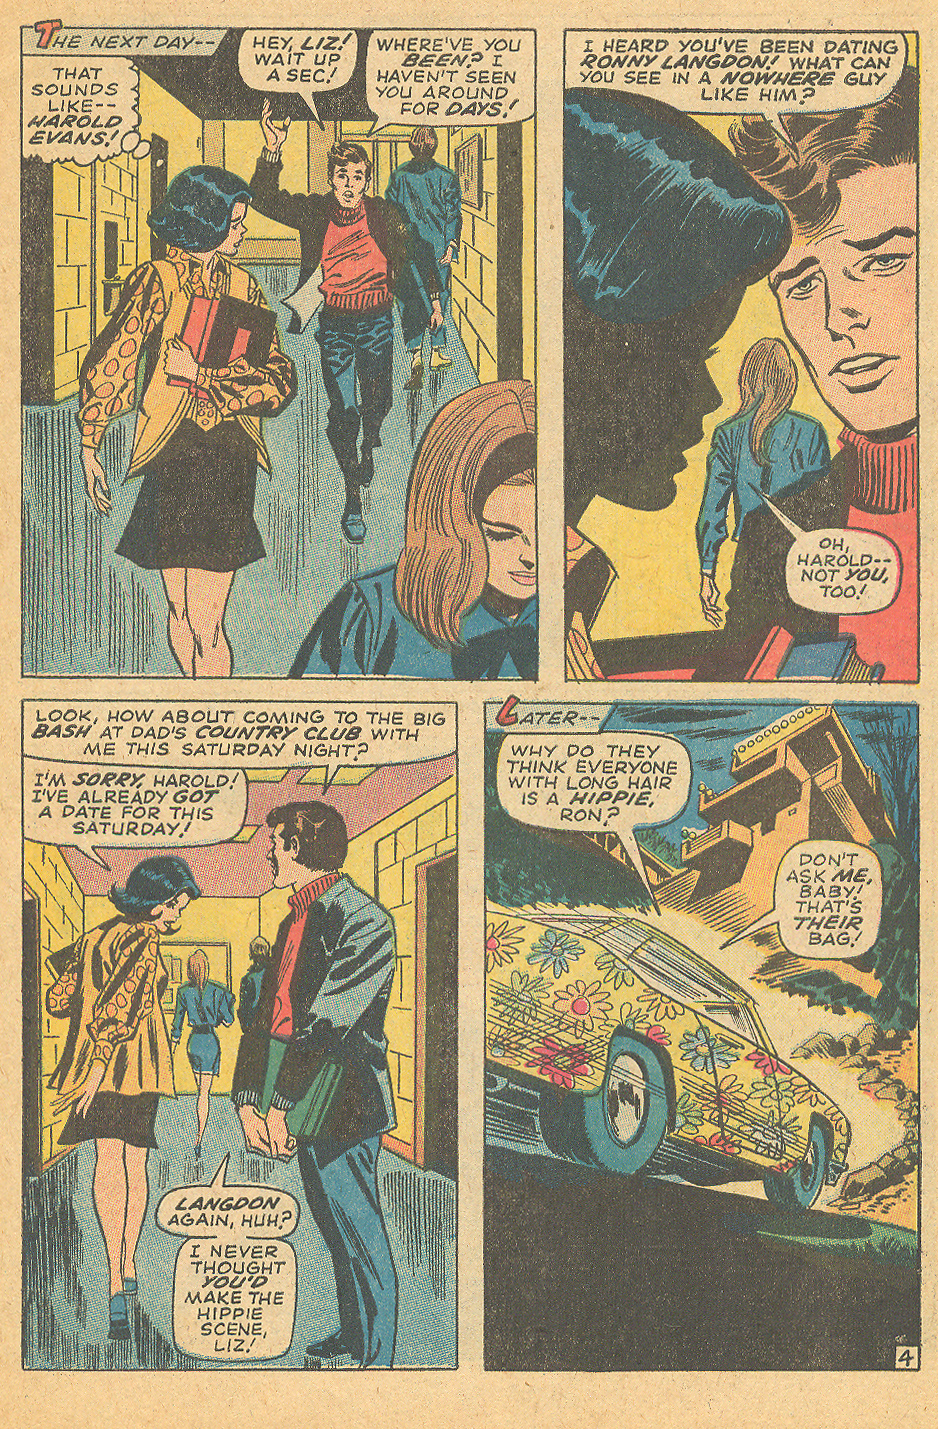 """""""His Hair is Long and I Love Him!"""" from   My Love  #5 (May 1970) by the creative team of Stan Lee, Gene Colan, and Frank Giacoia"""